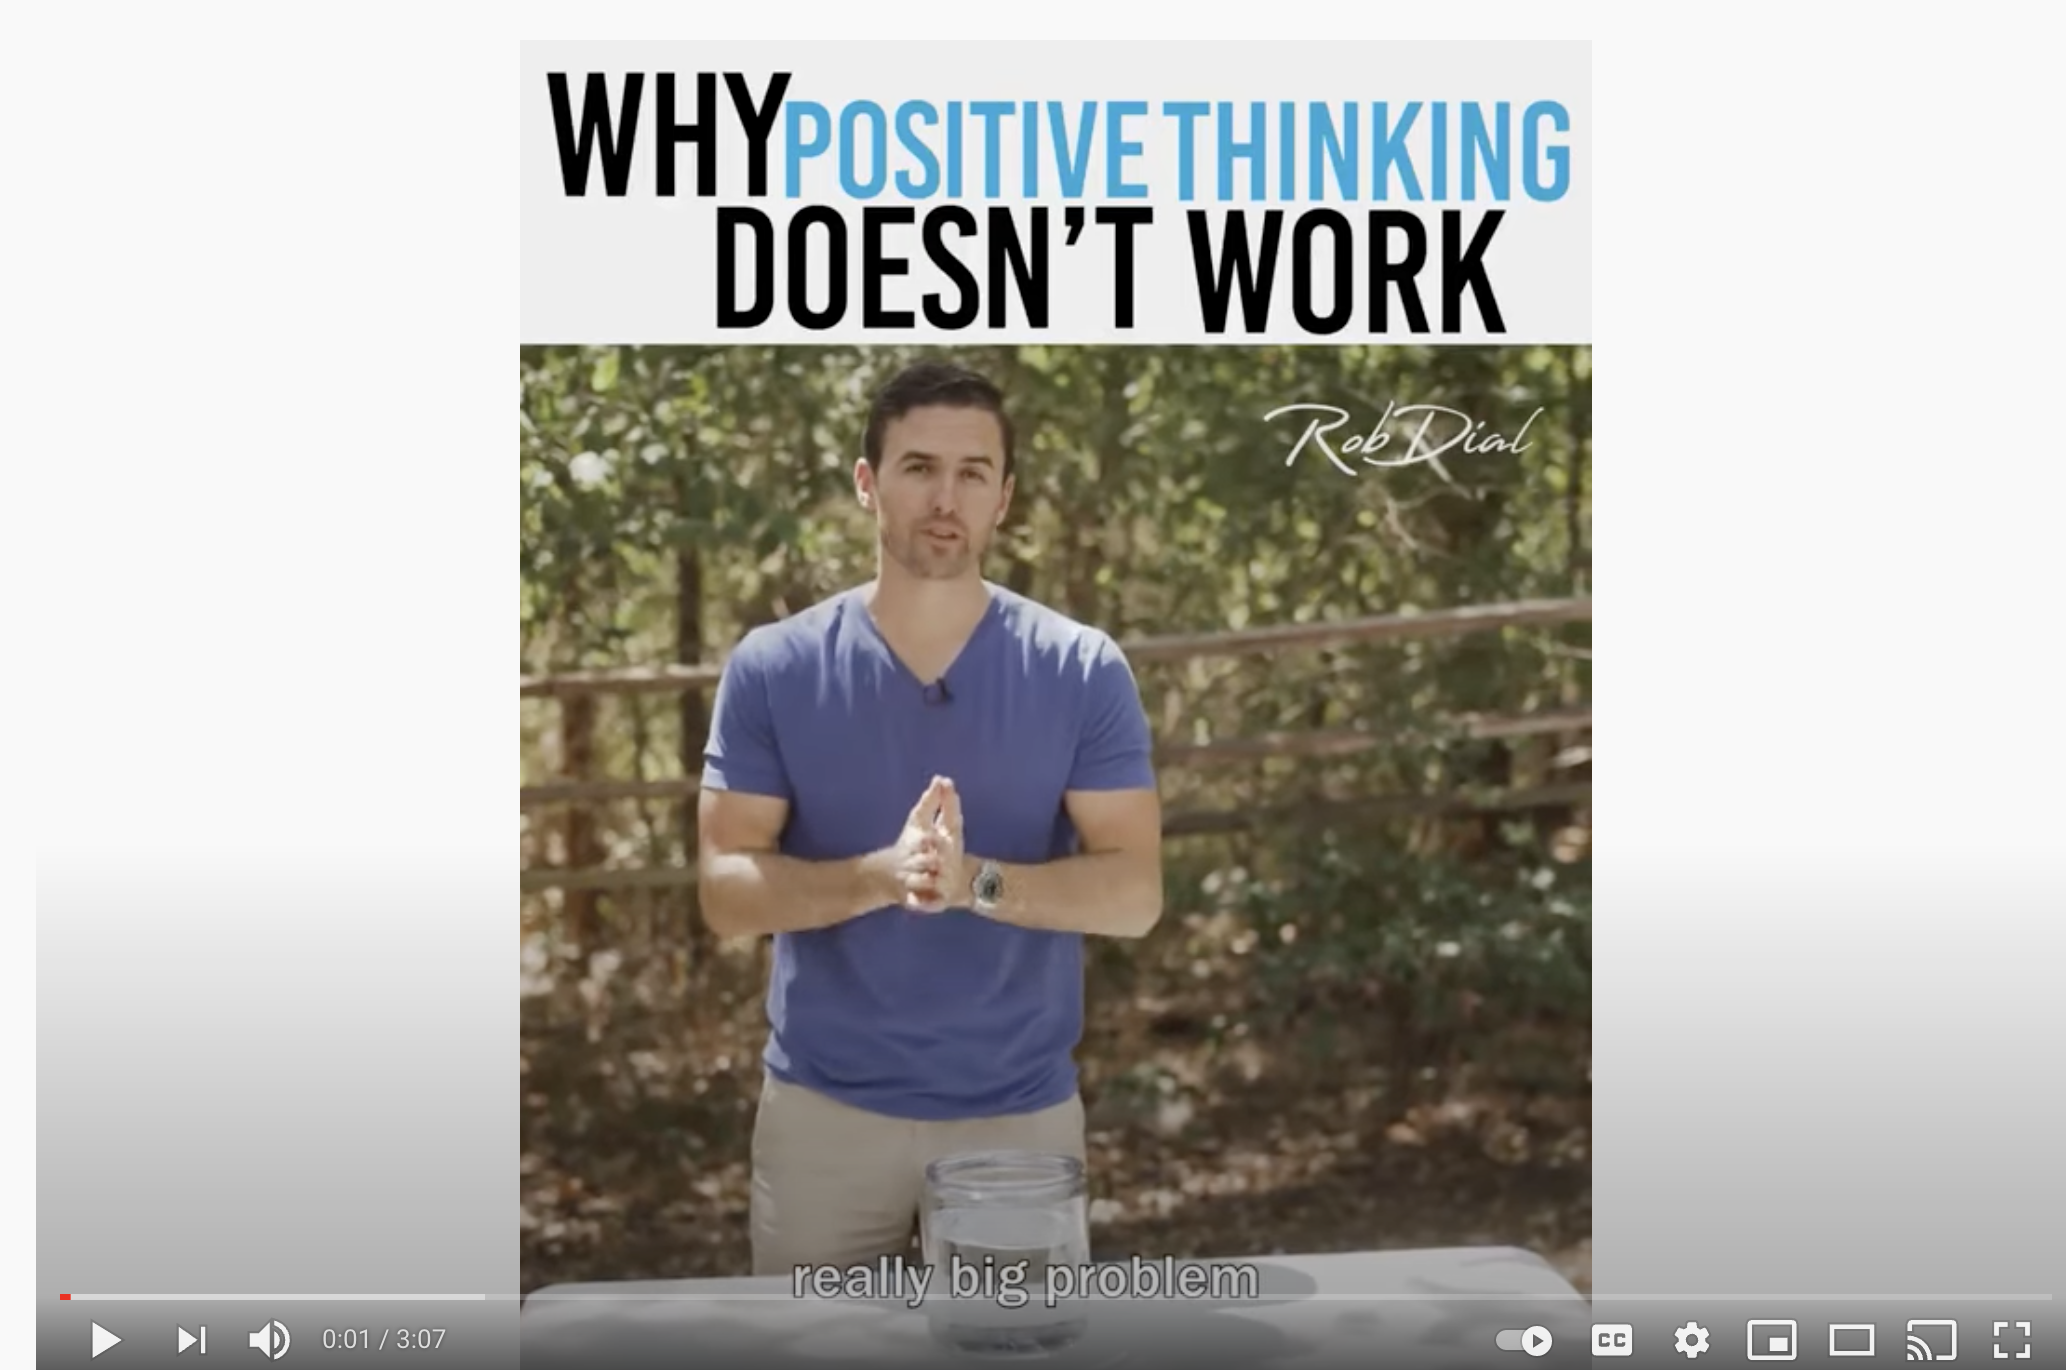 Why positive thinking doesn't work